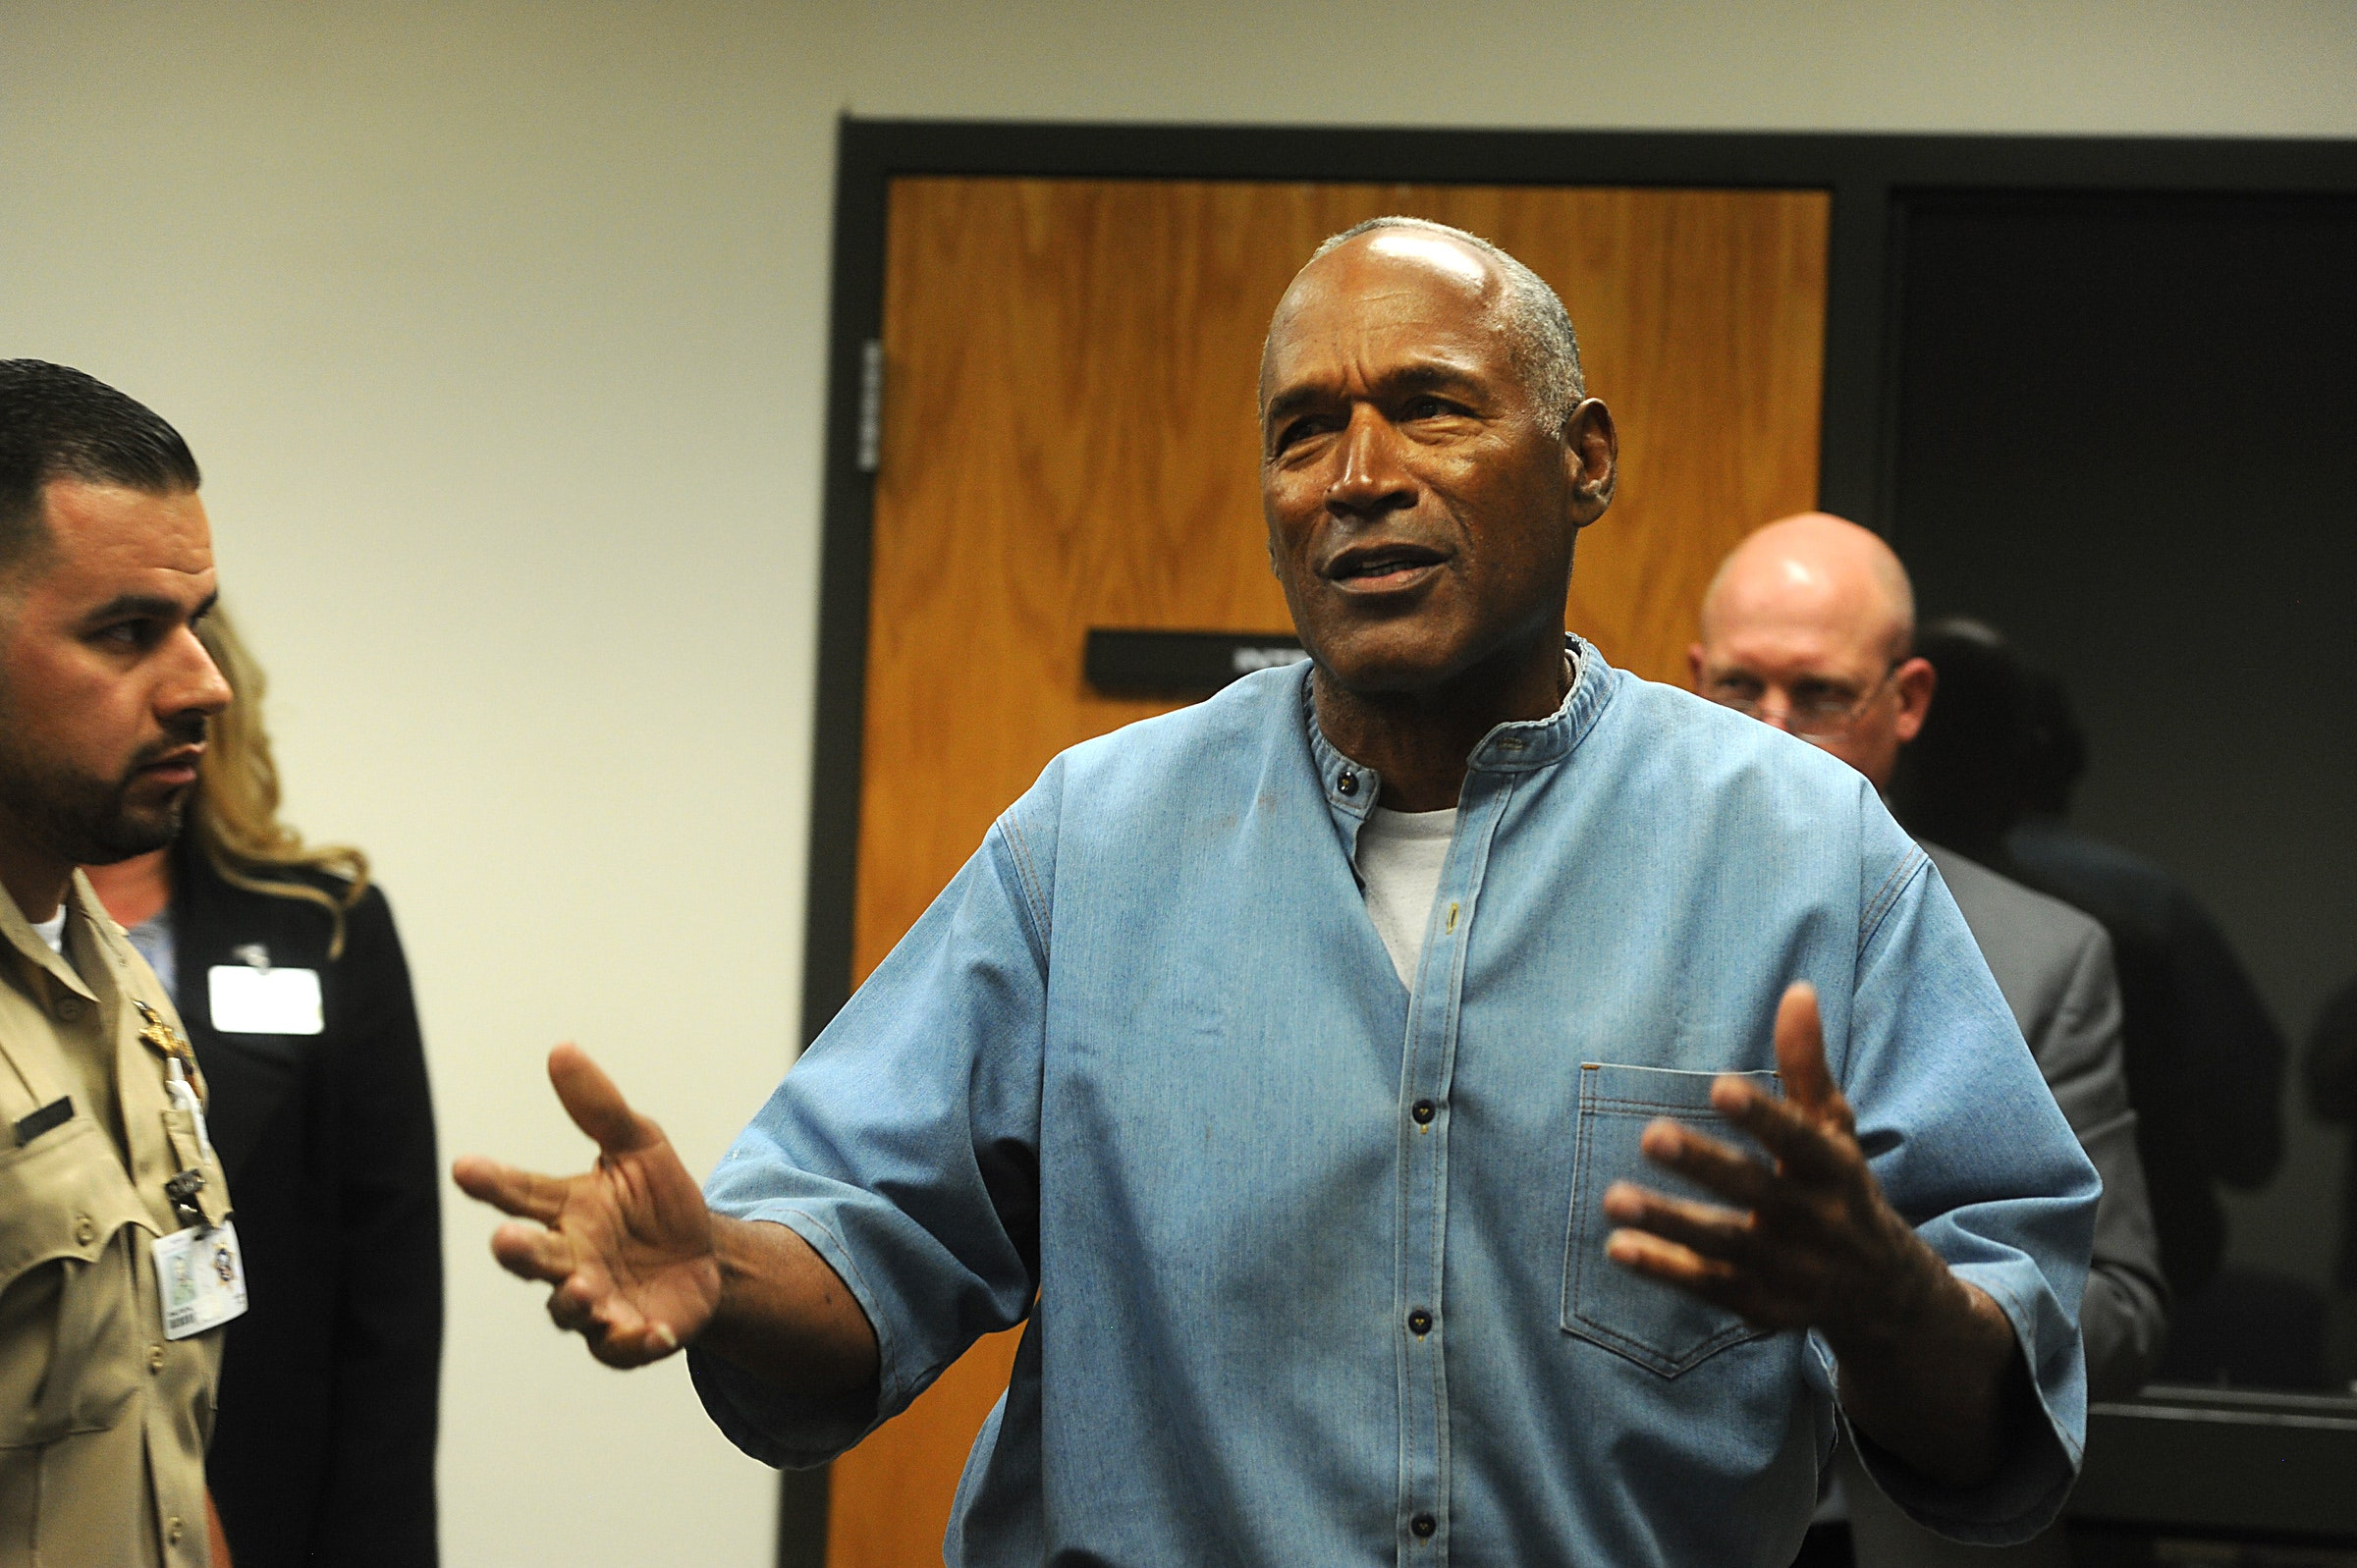 Is O.J. Simpson Planning to Pay the $60 Million He Owes? No.